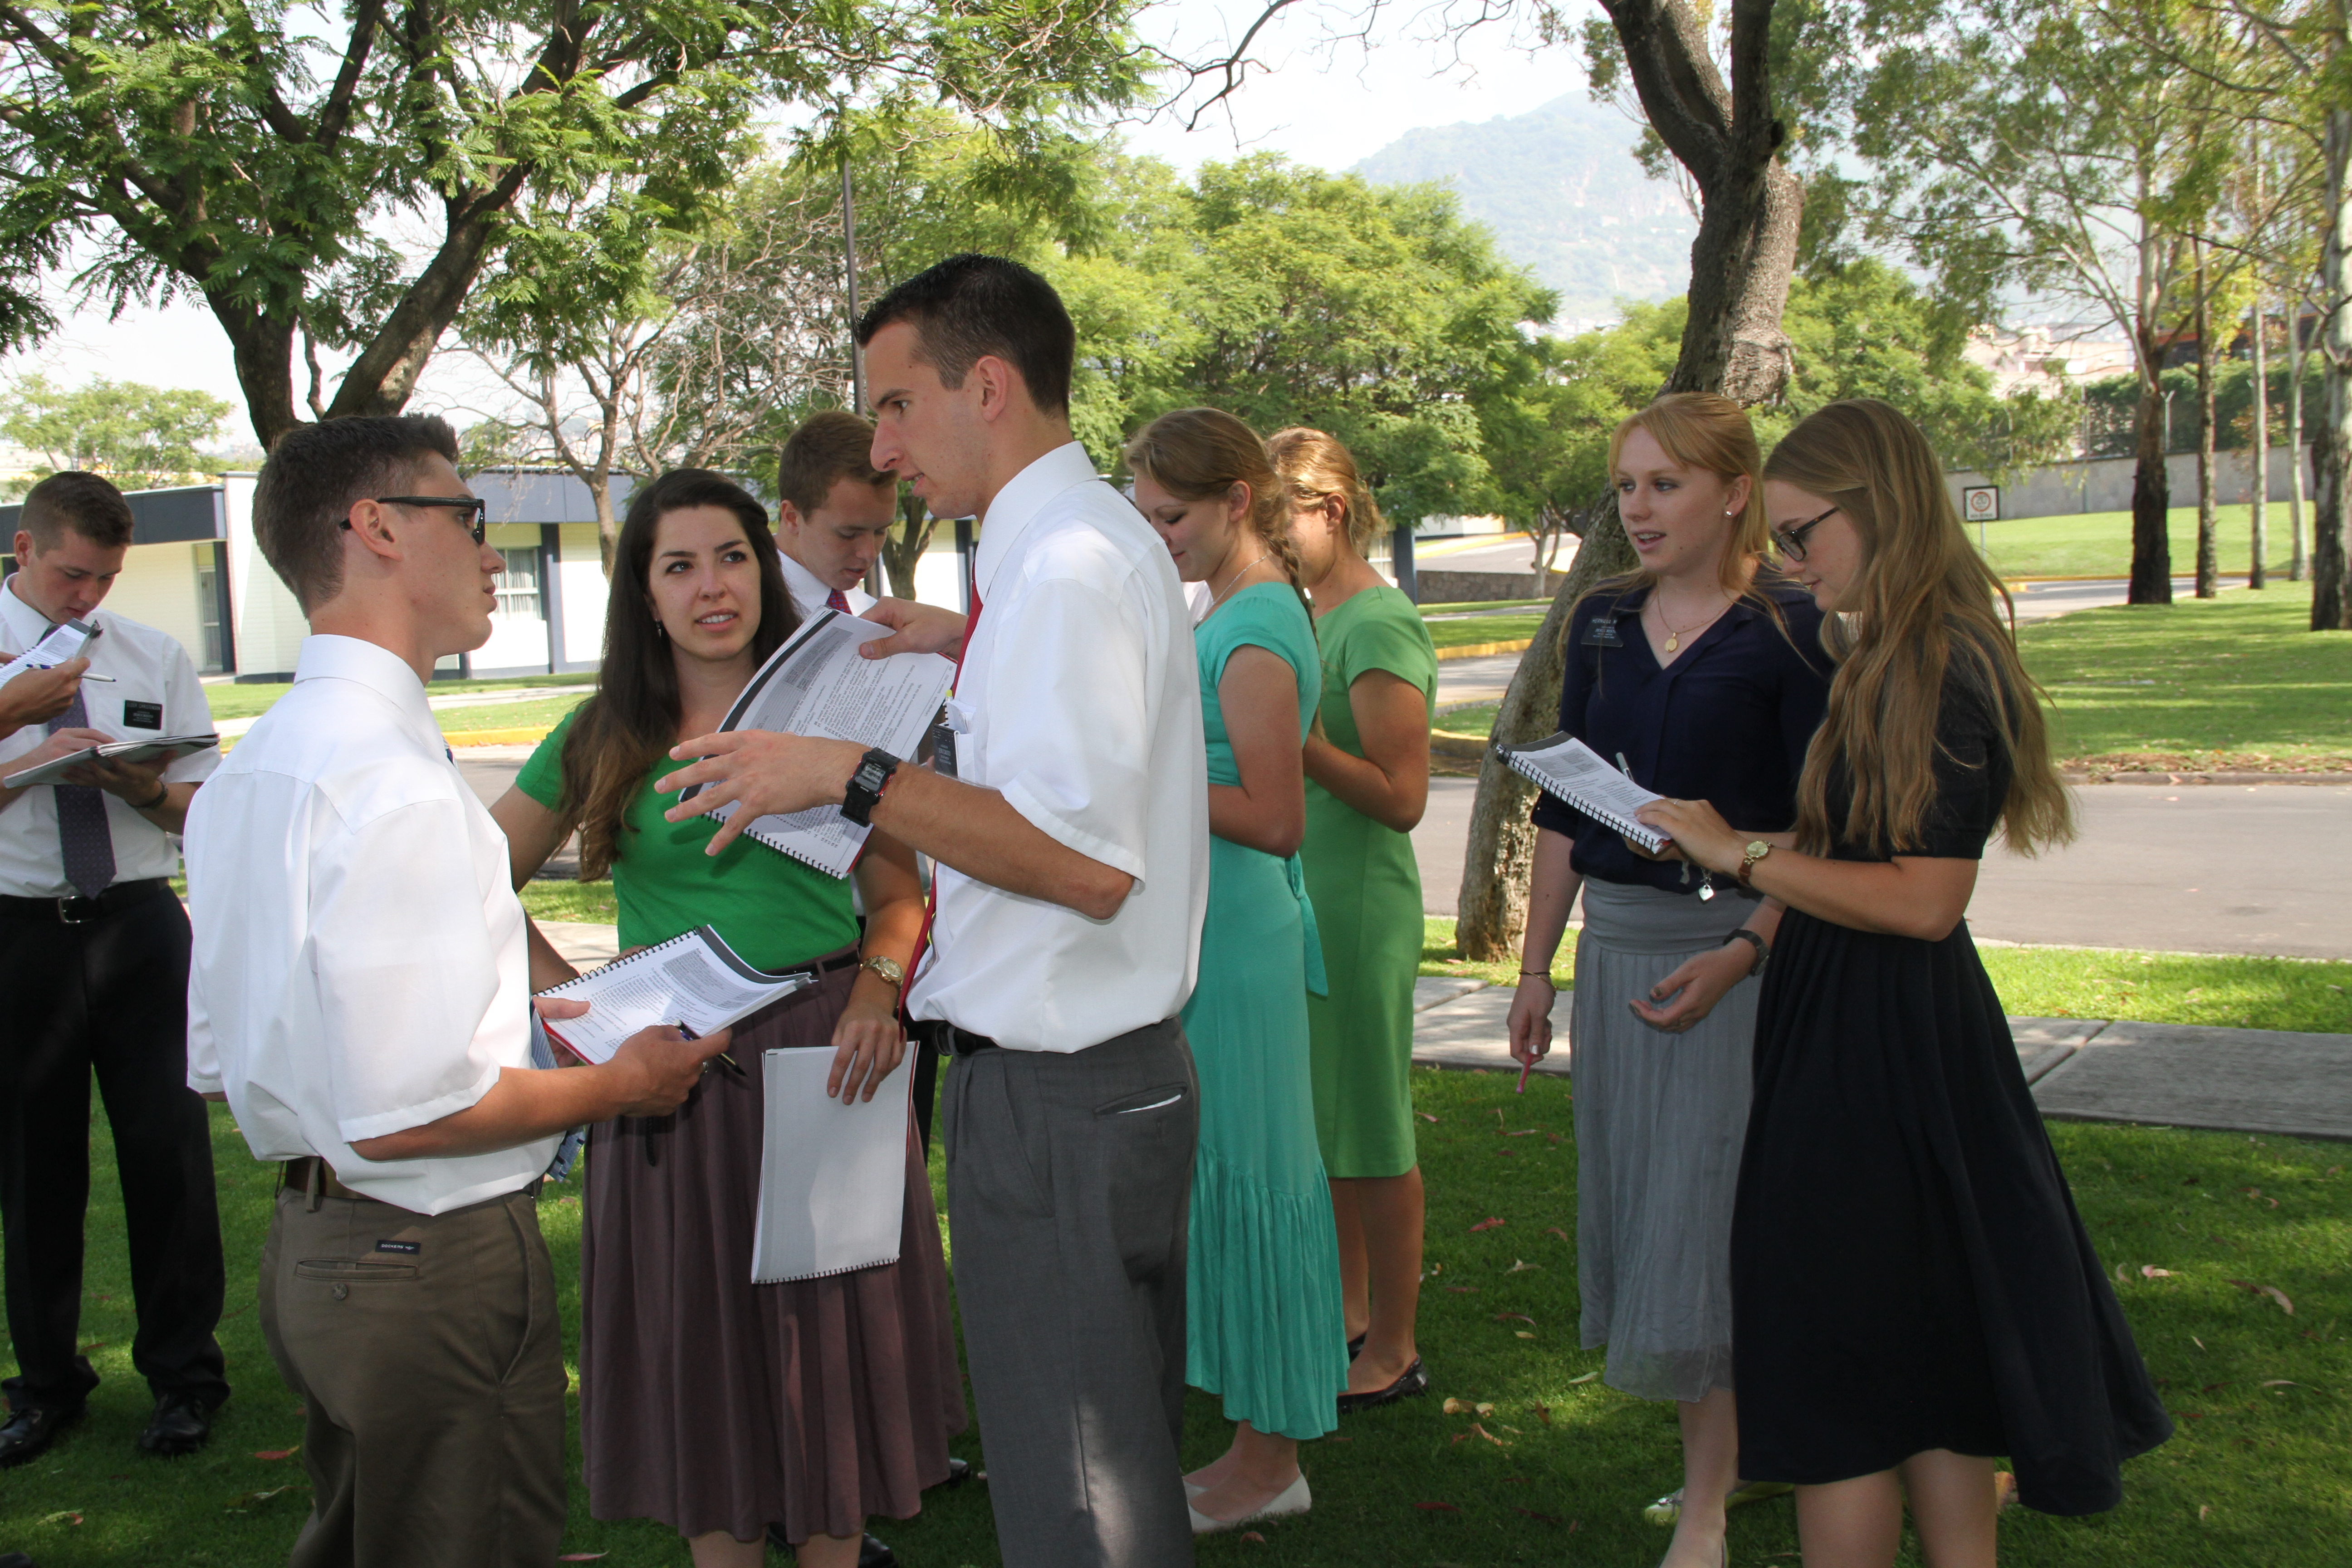 Missionaries enjoy the temperate weather at the Mexico Missionary Training Center to practice their Spanish and practice training techniques in August 2013.